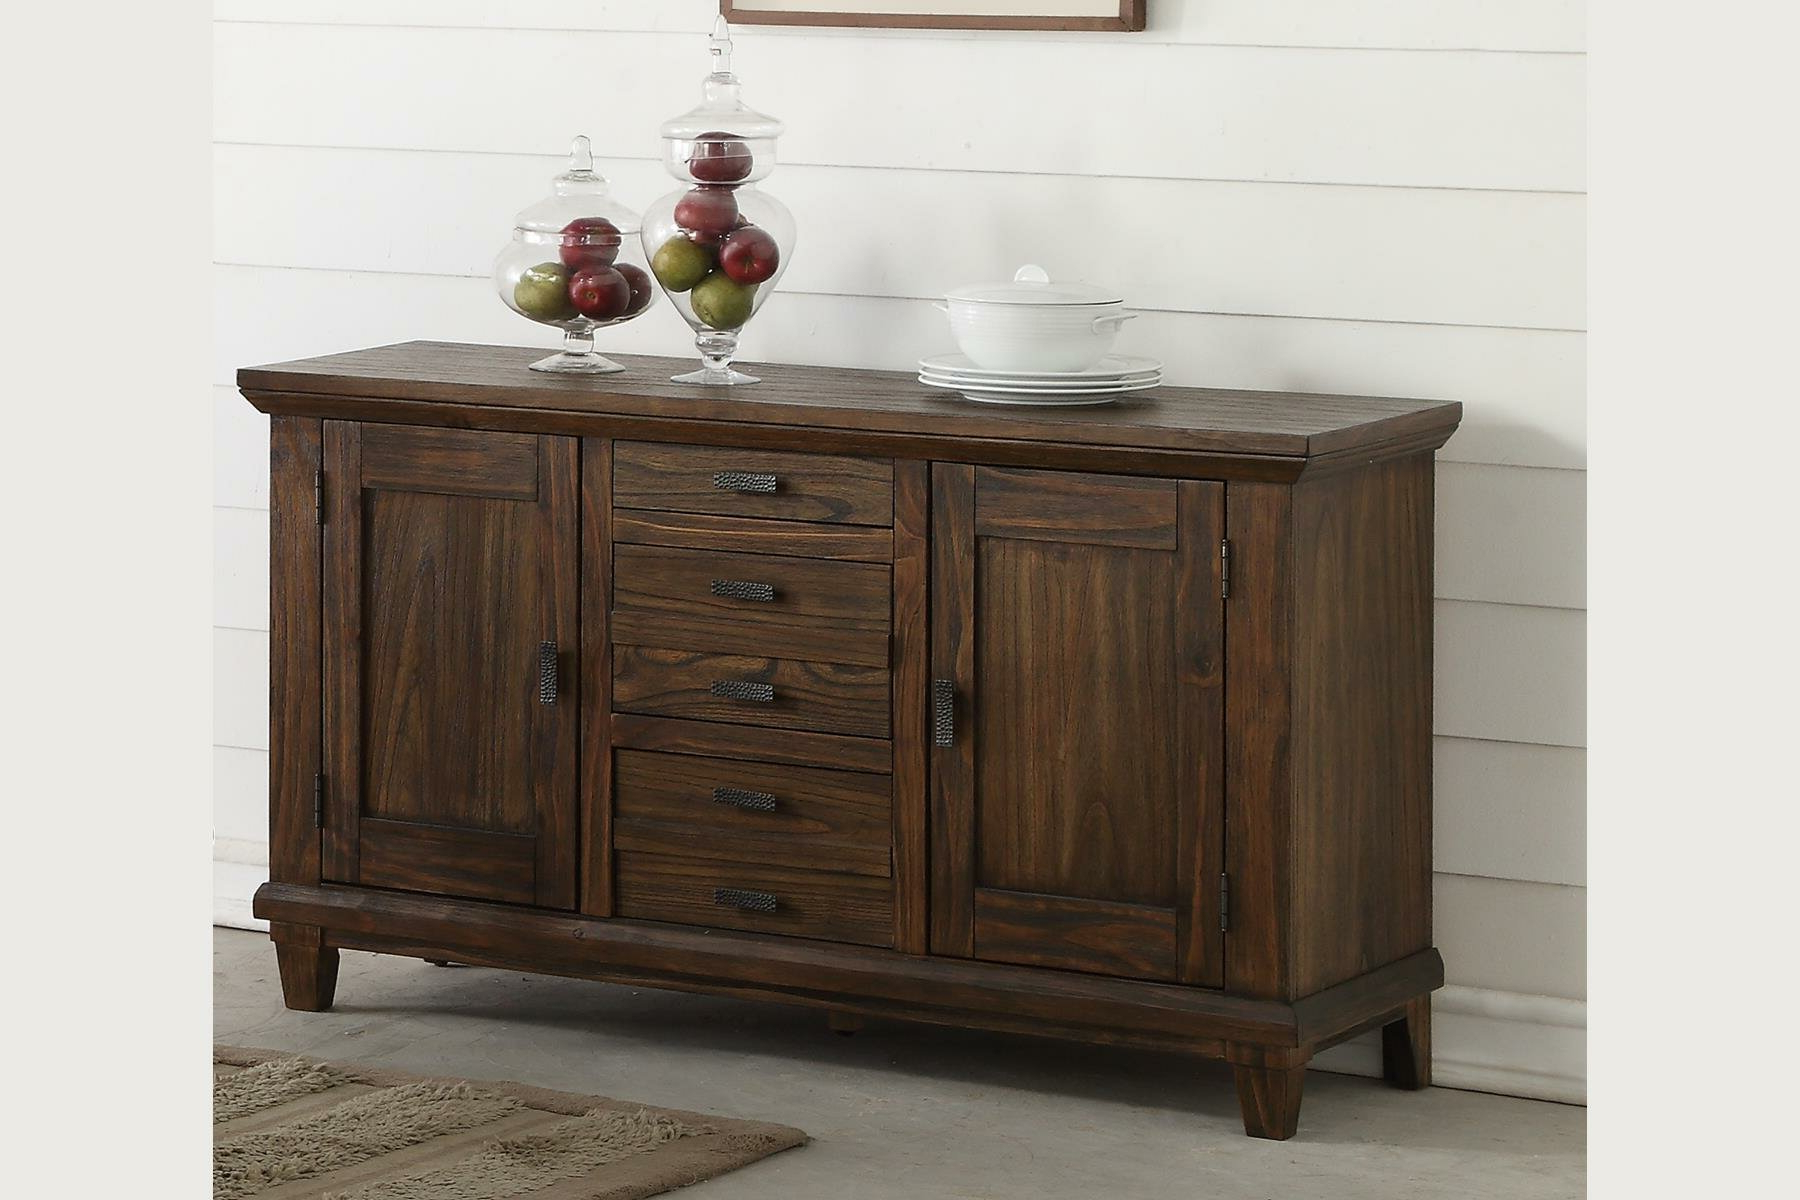 Best And Newest Tilman Sideboards Within Rustic Sideboards & Buffets (View 3 of 20)